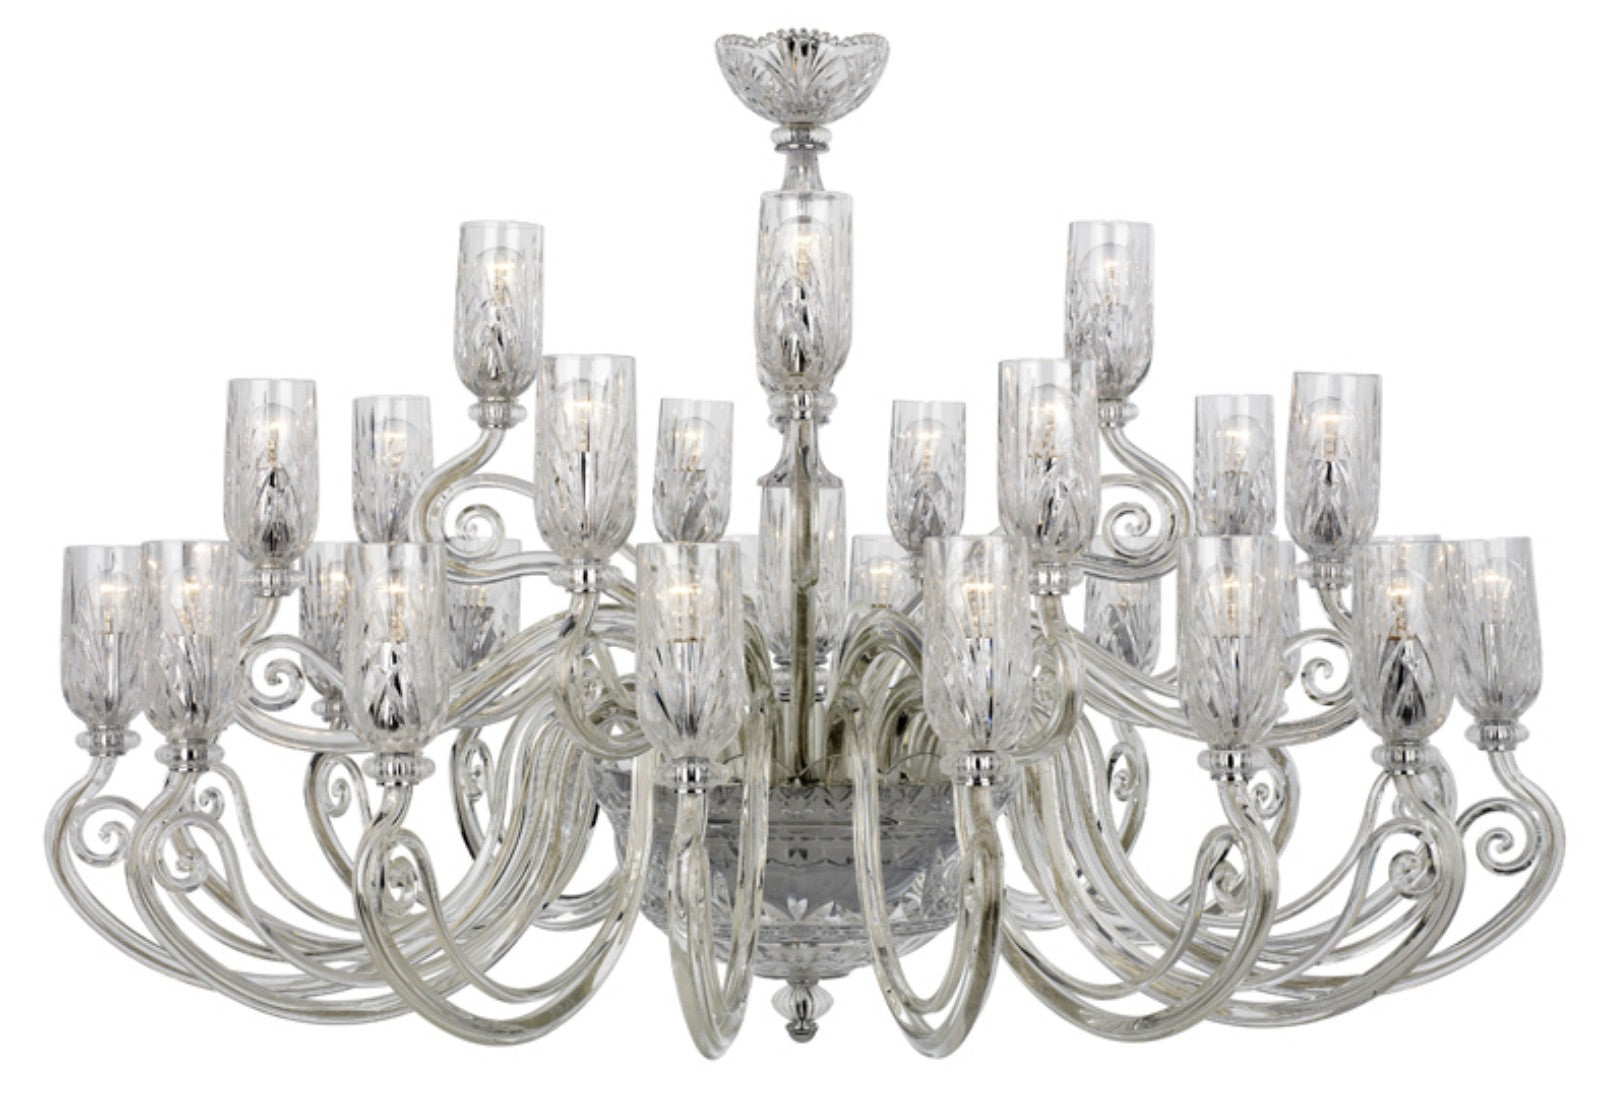 Bayswater Chandelier 28 - David Malik & Son